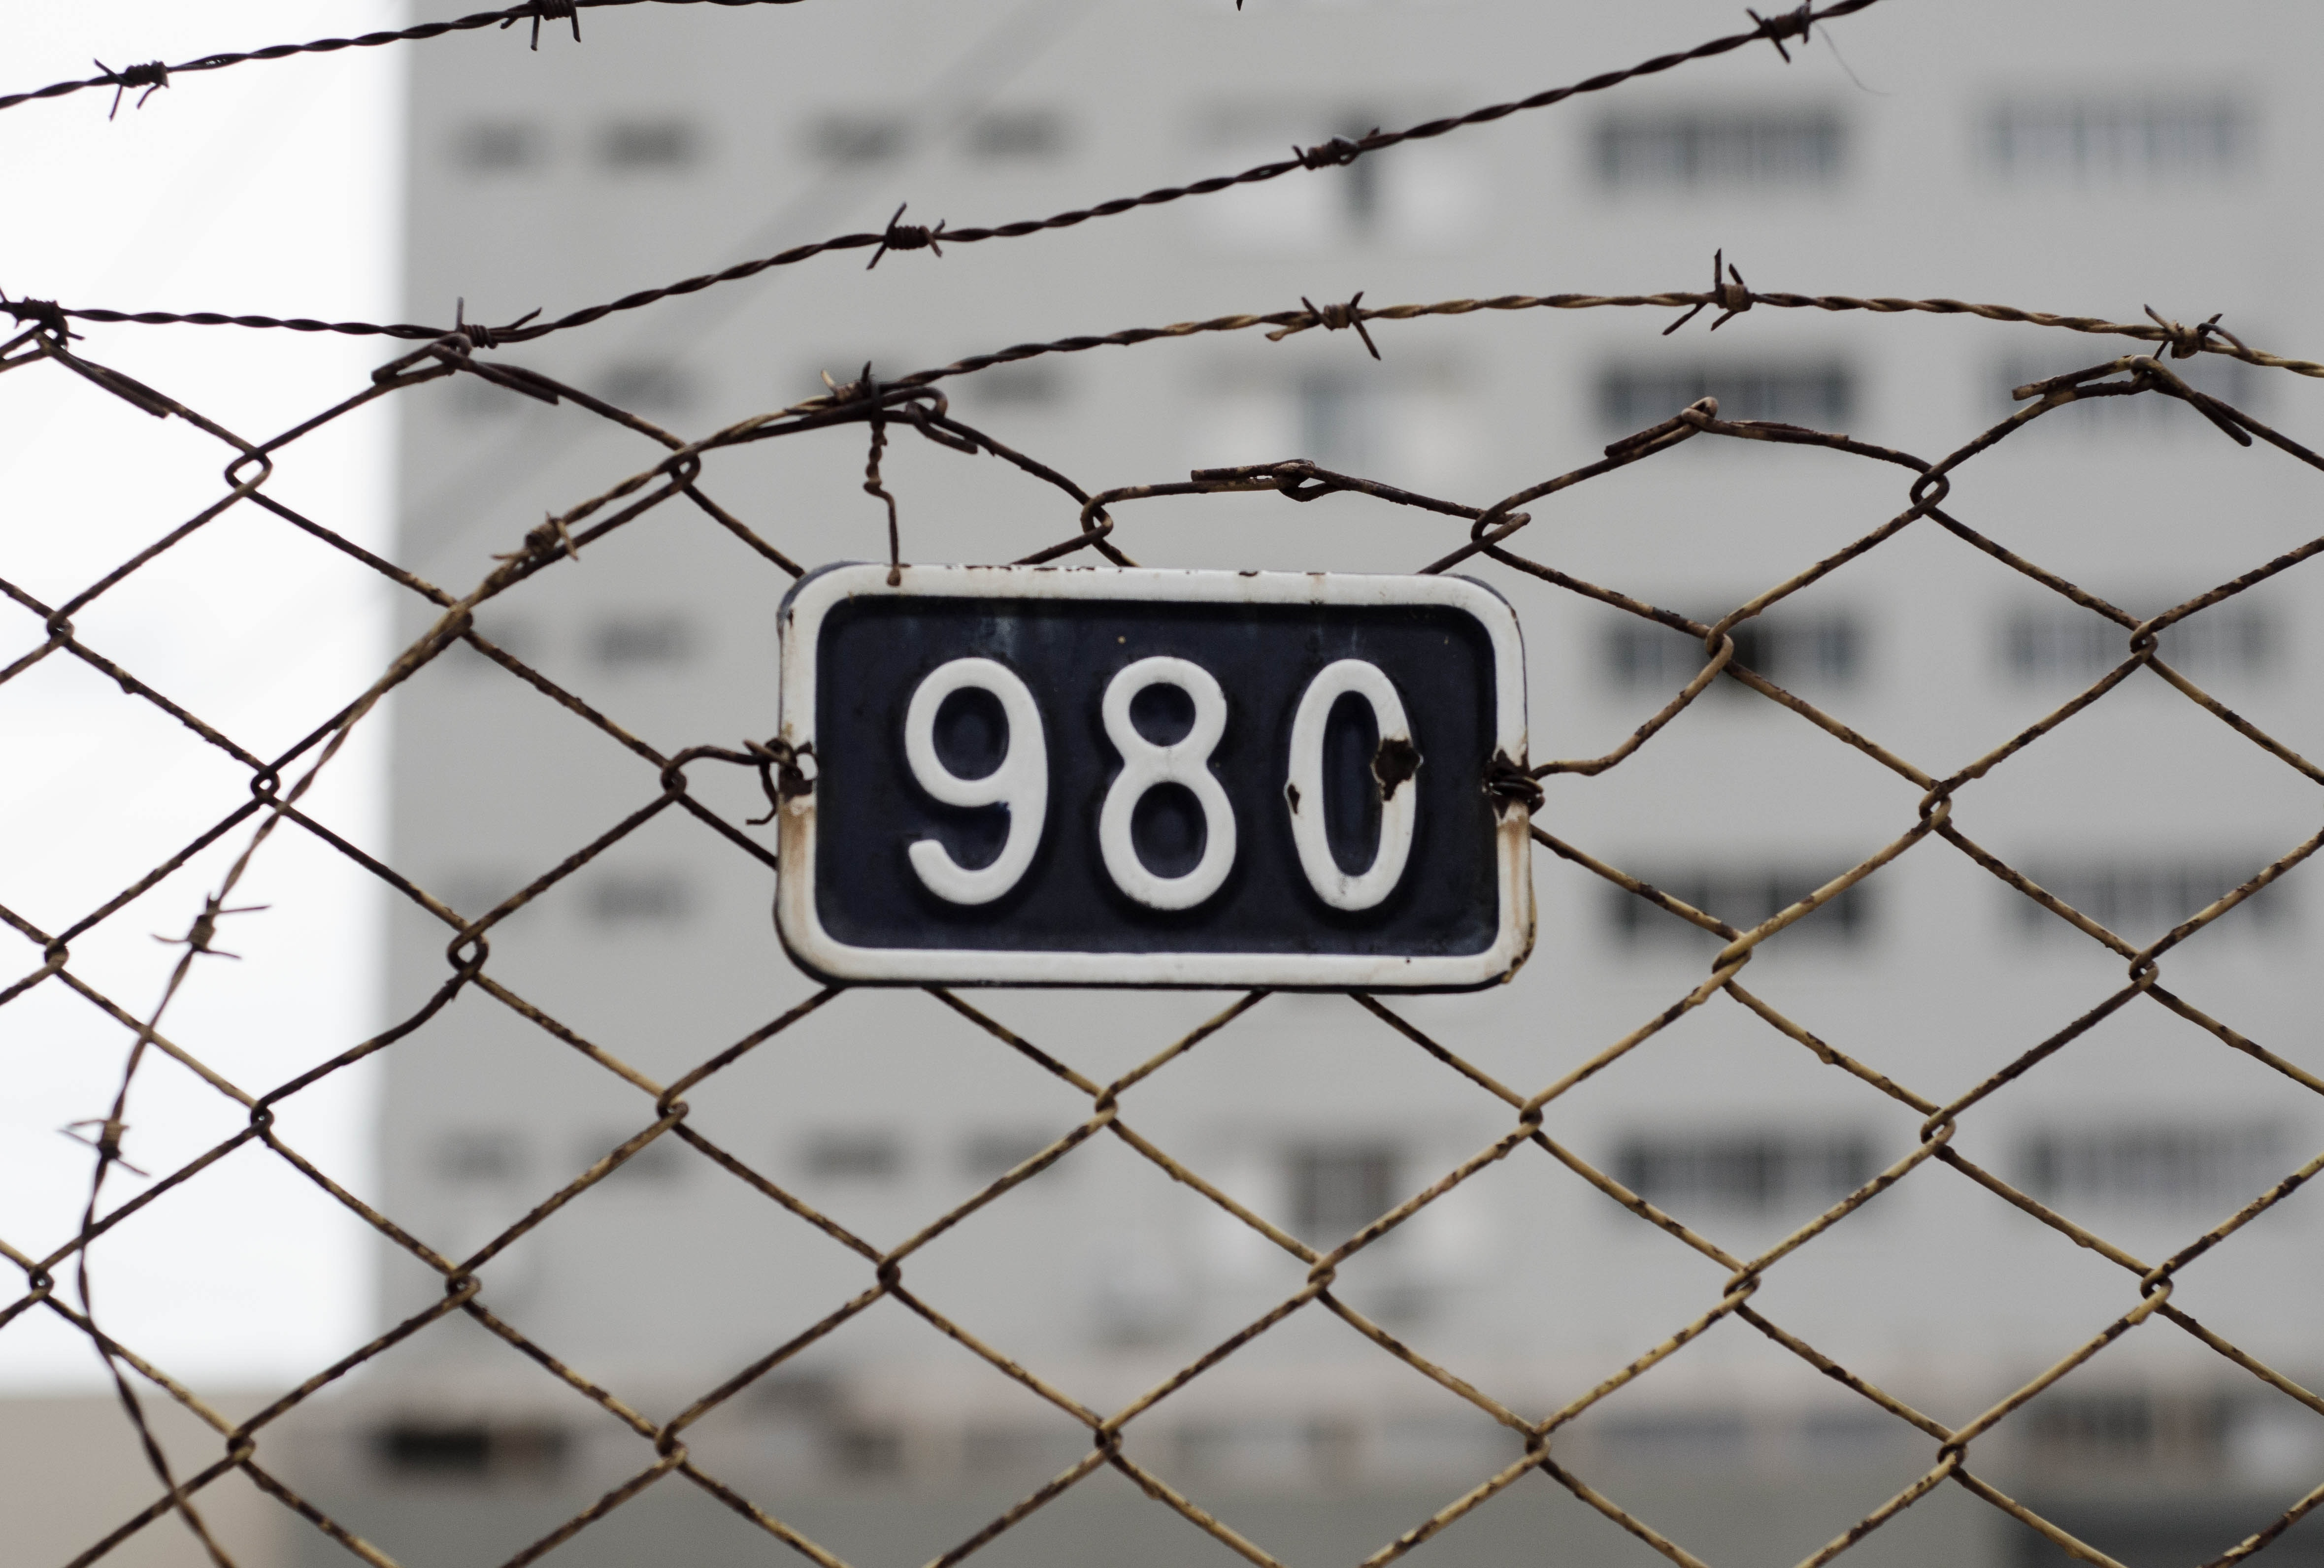 barb-wires-barbed-wire-barrier-340585